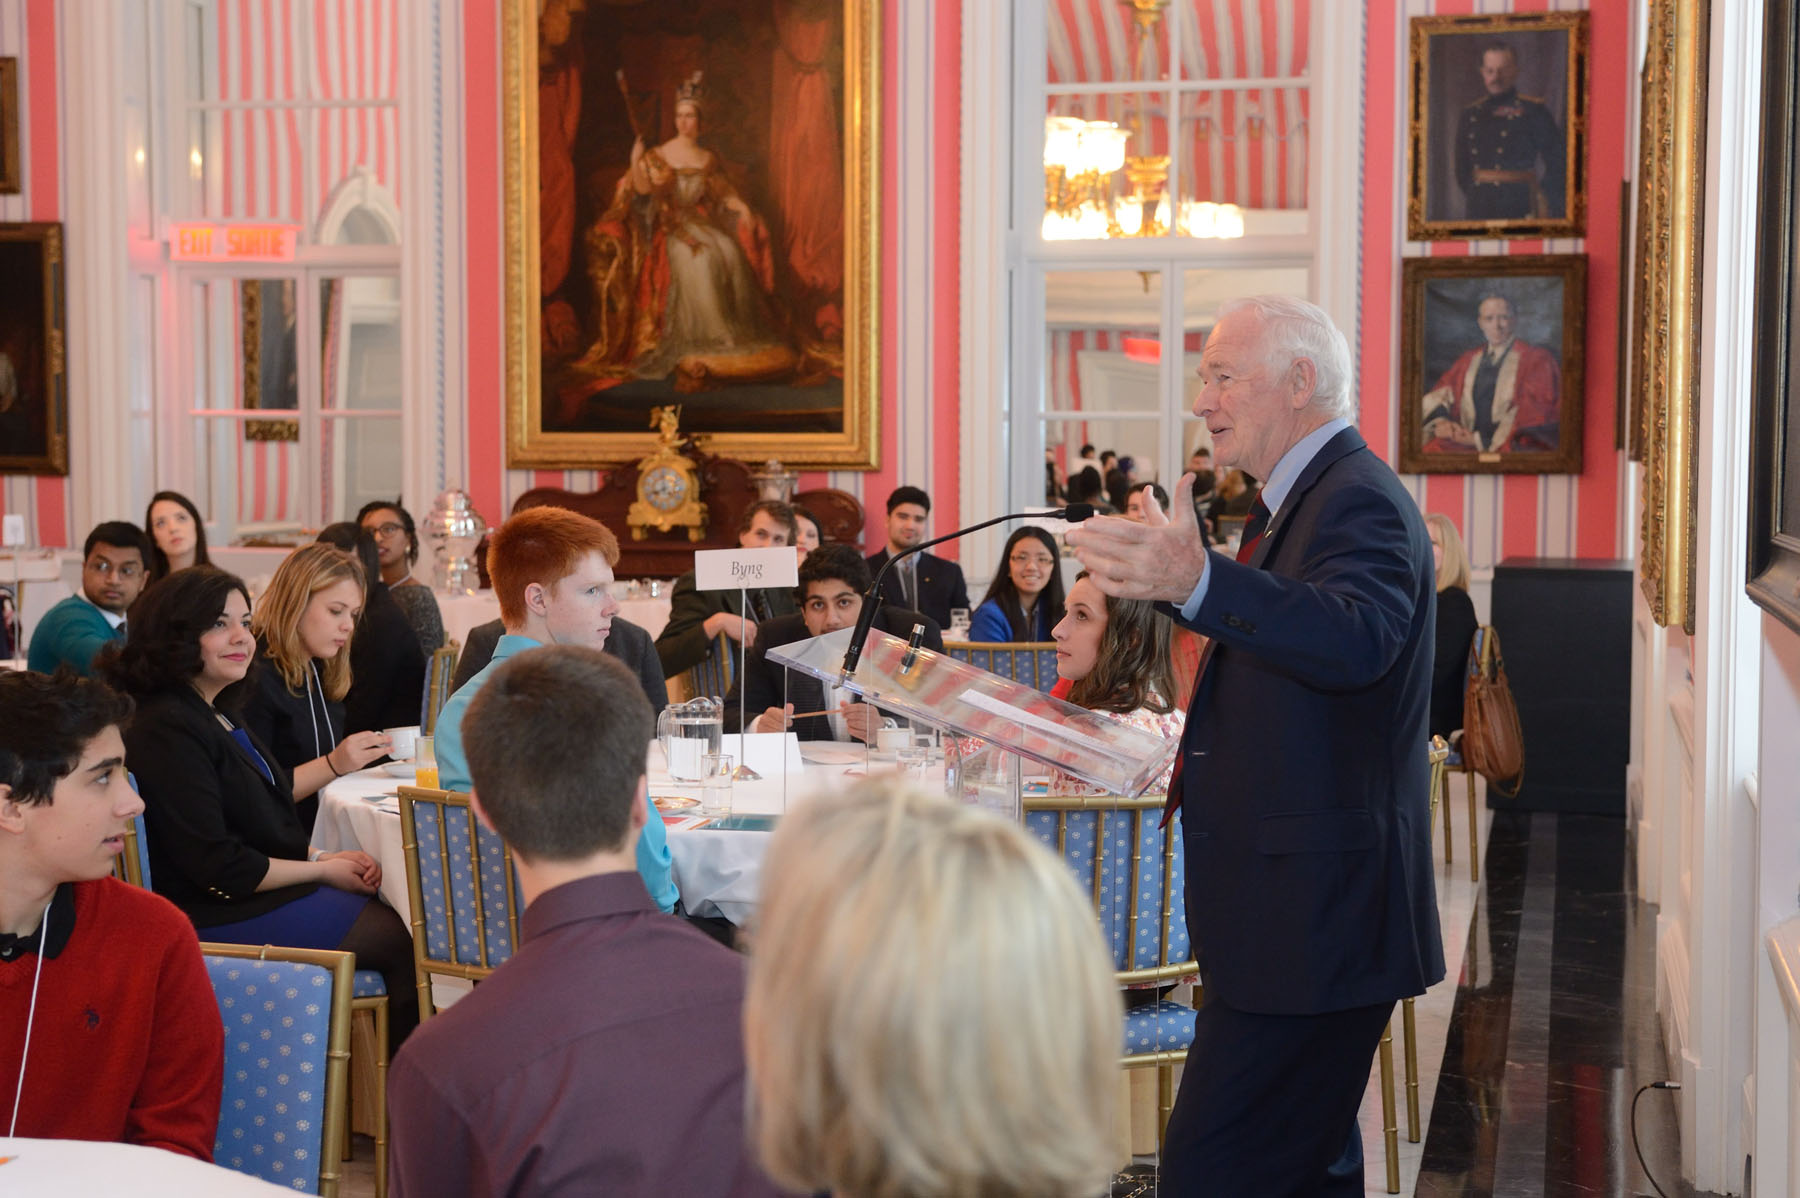 The Governor General hosted a one-day round-table discussion on youth engagement. He delivered opening remarks about the importance of building a smarter, more caring nation and how youth can take a more active role in their communities.